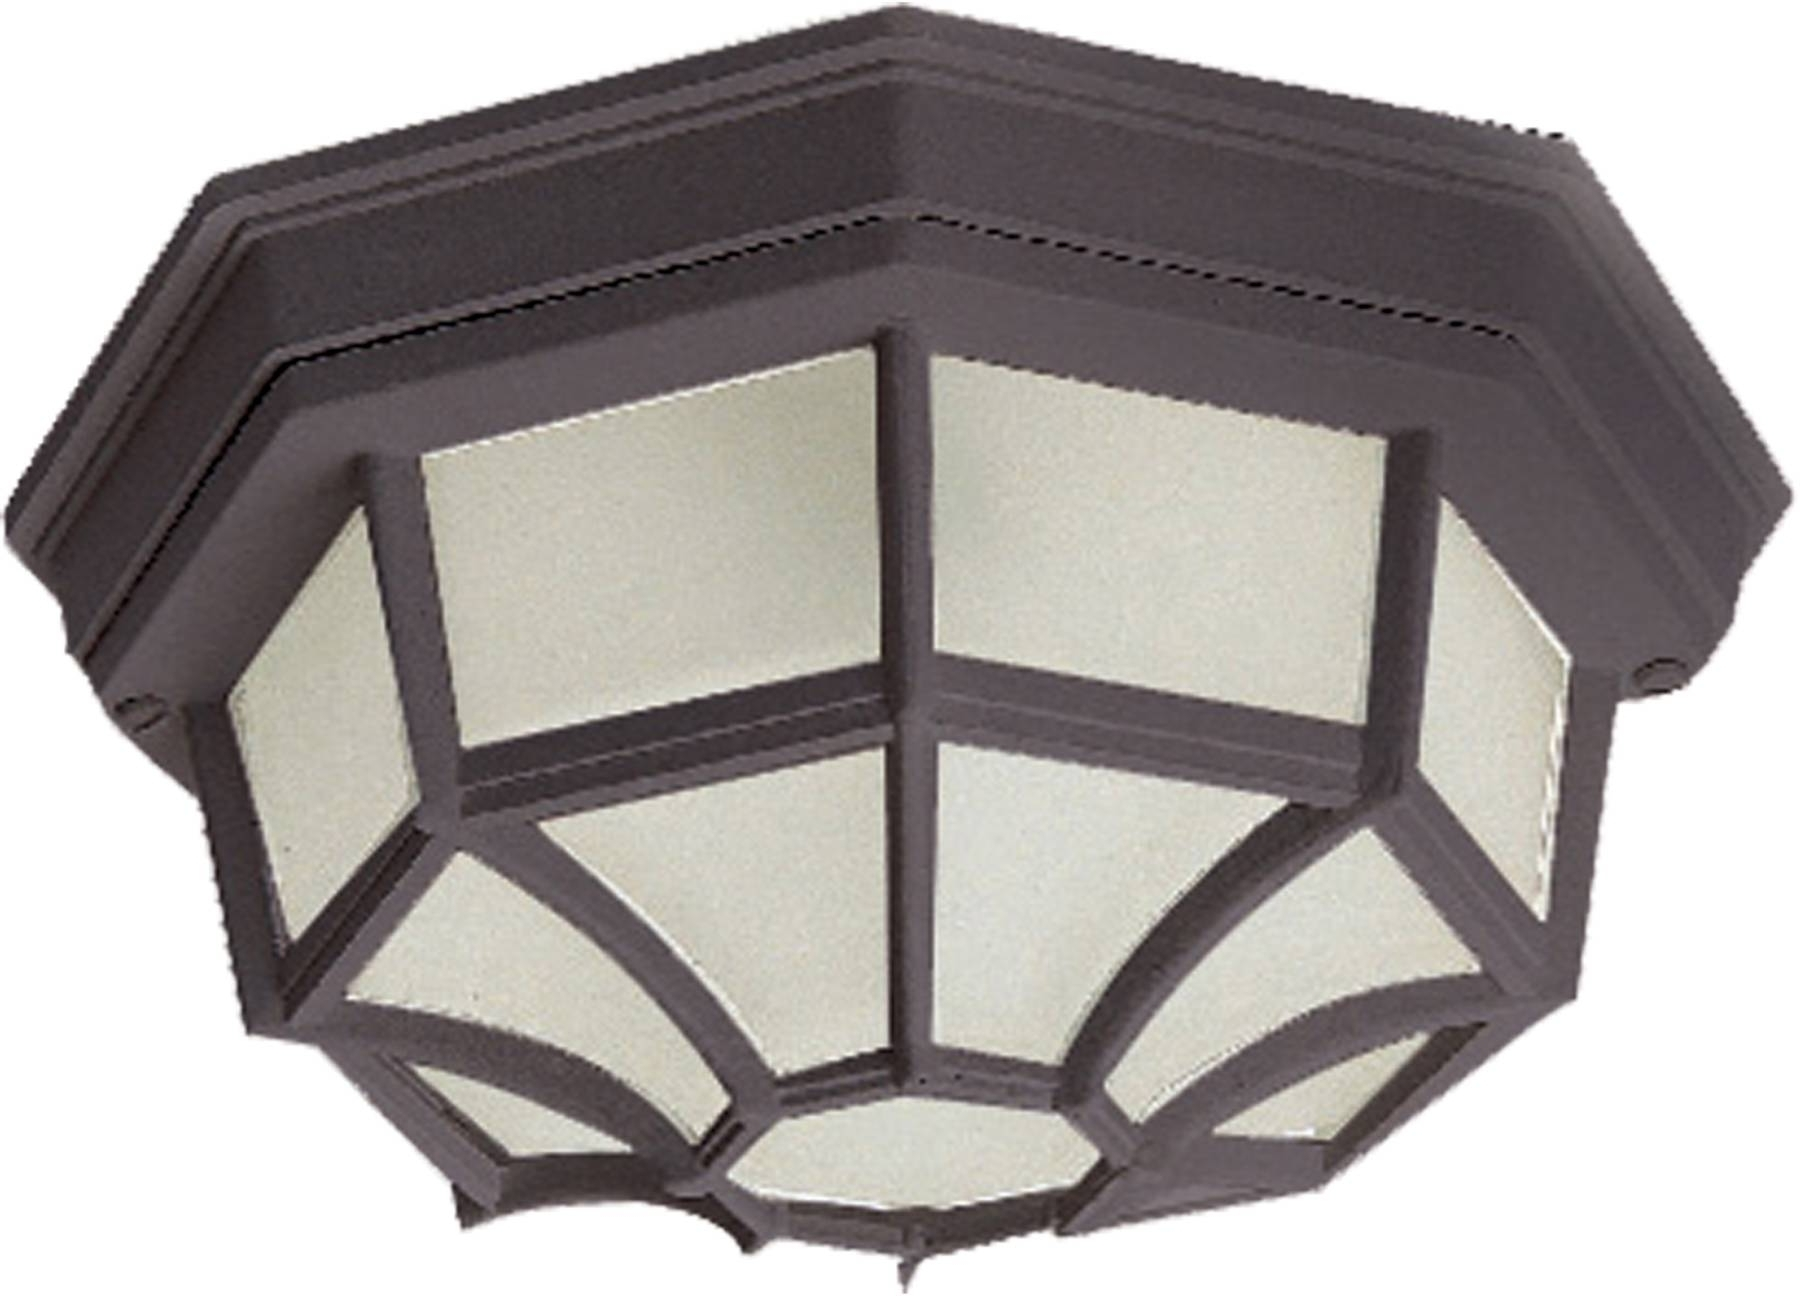 Popular Ceiling Lights : Conservative Outdoor Ceiling Lights For Porch Intended For Outdoor Ceiling Fans With Motion Sensor Light (View 17 of 20)